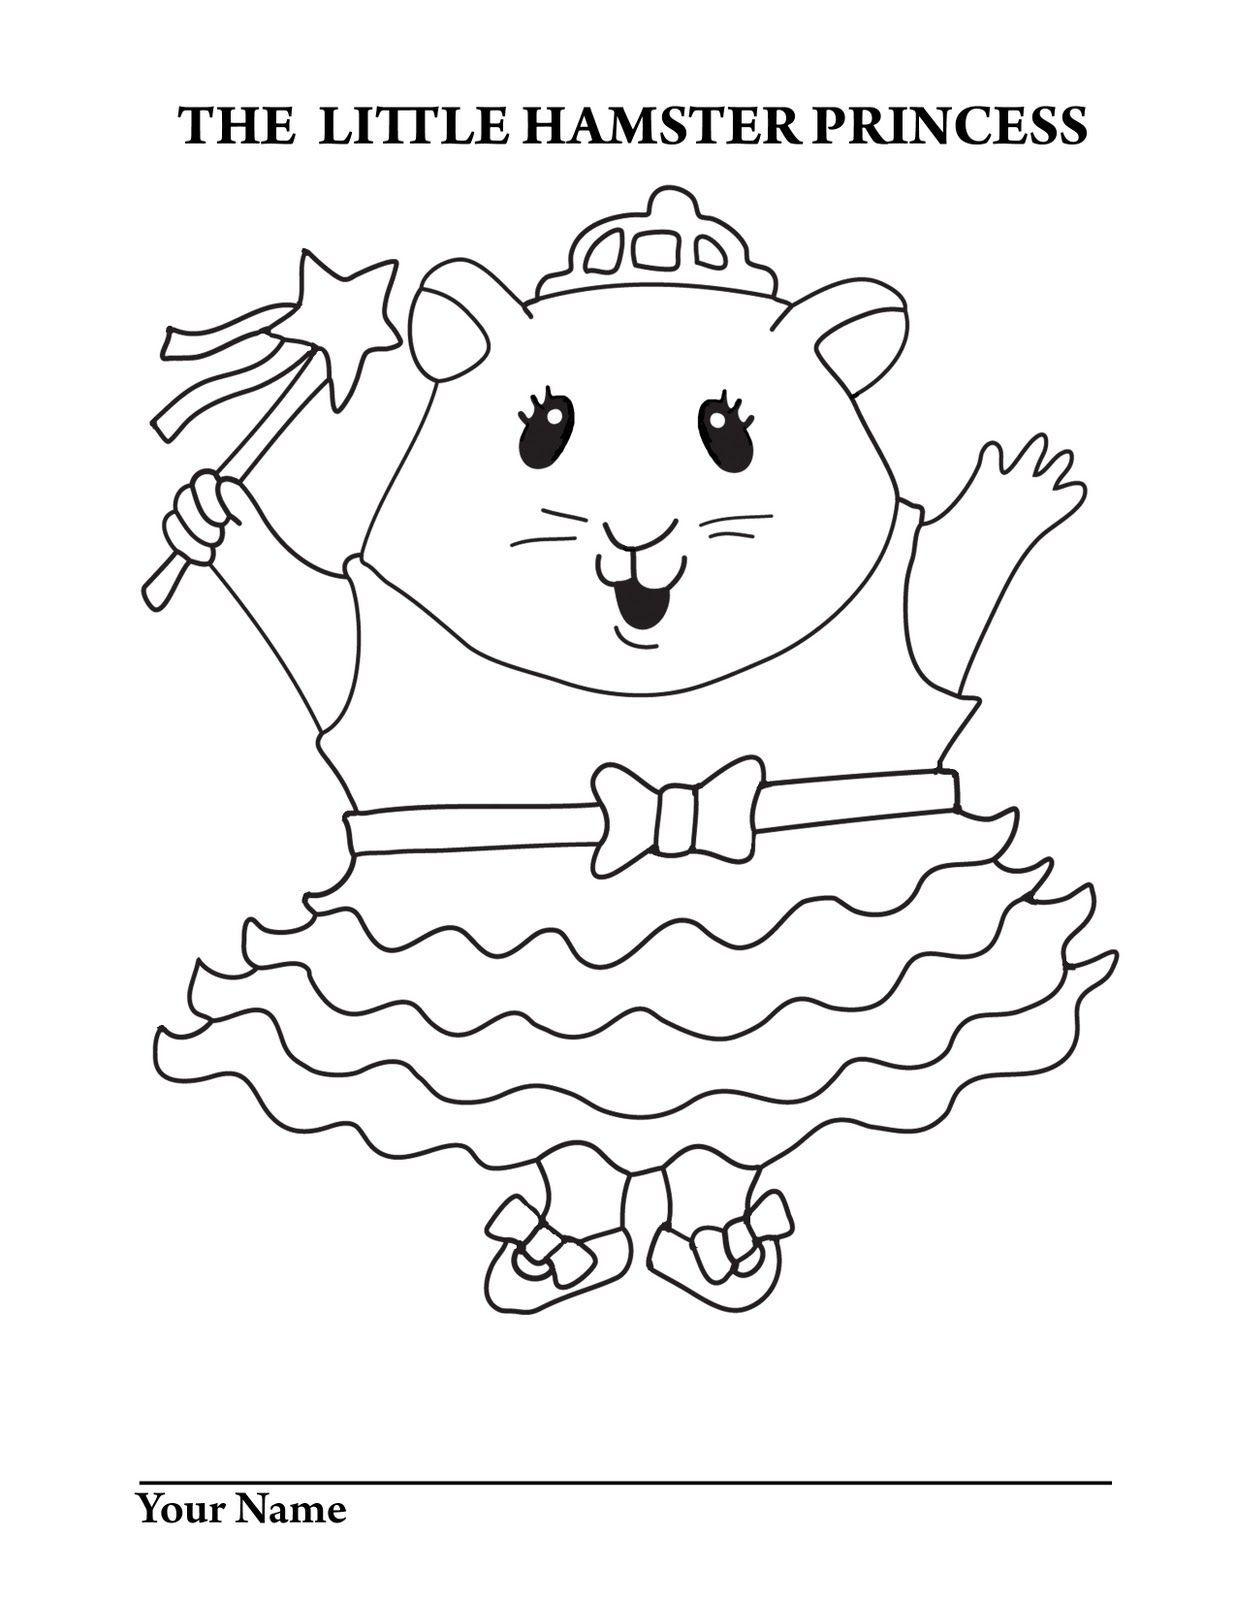 Colorpagestoprint Com Bear Coloring Pages Princess Coloring Pages Cute Coloring Pages In 2021 Bear Coloring Pages Princess Coloring Pages Cute Coloring Pages